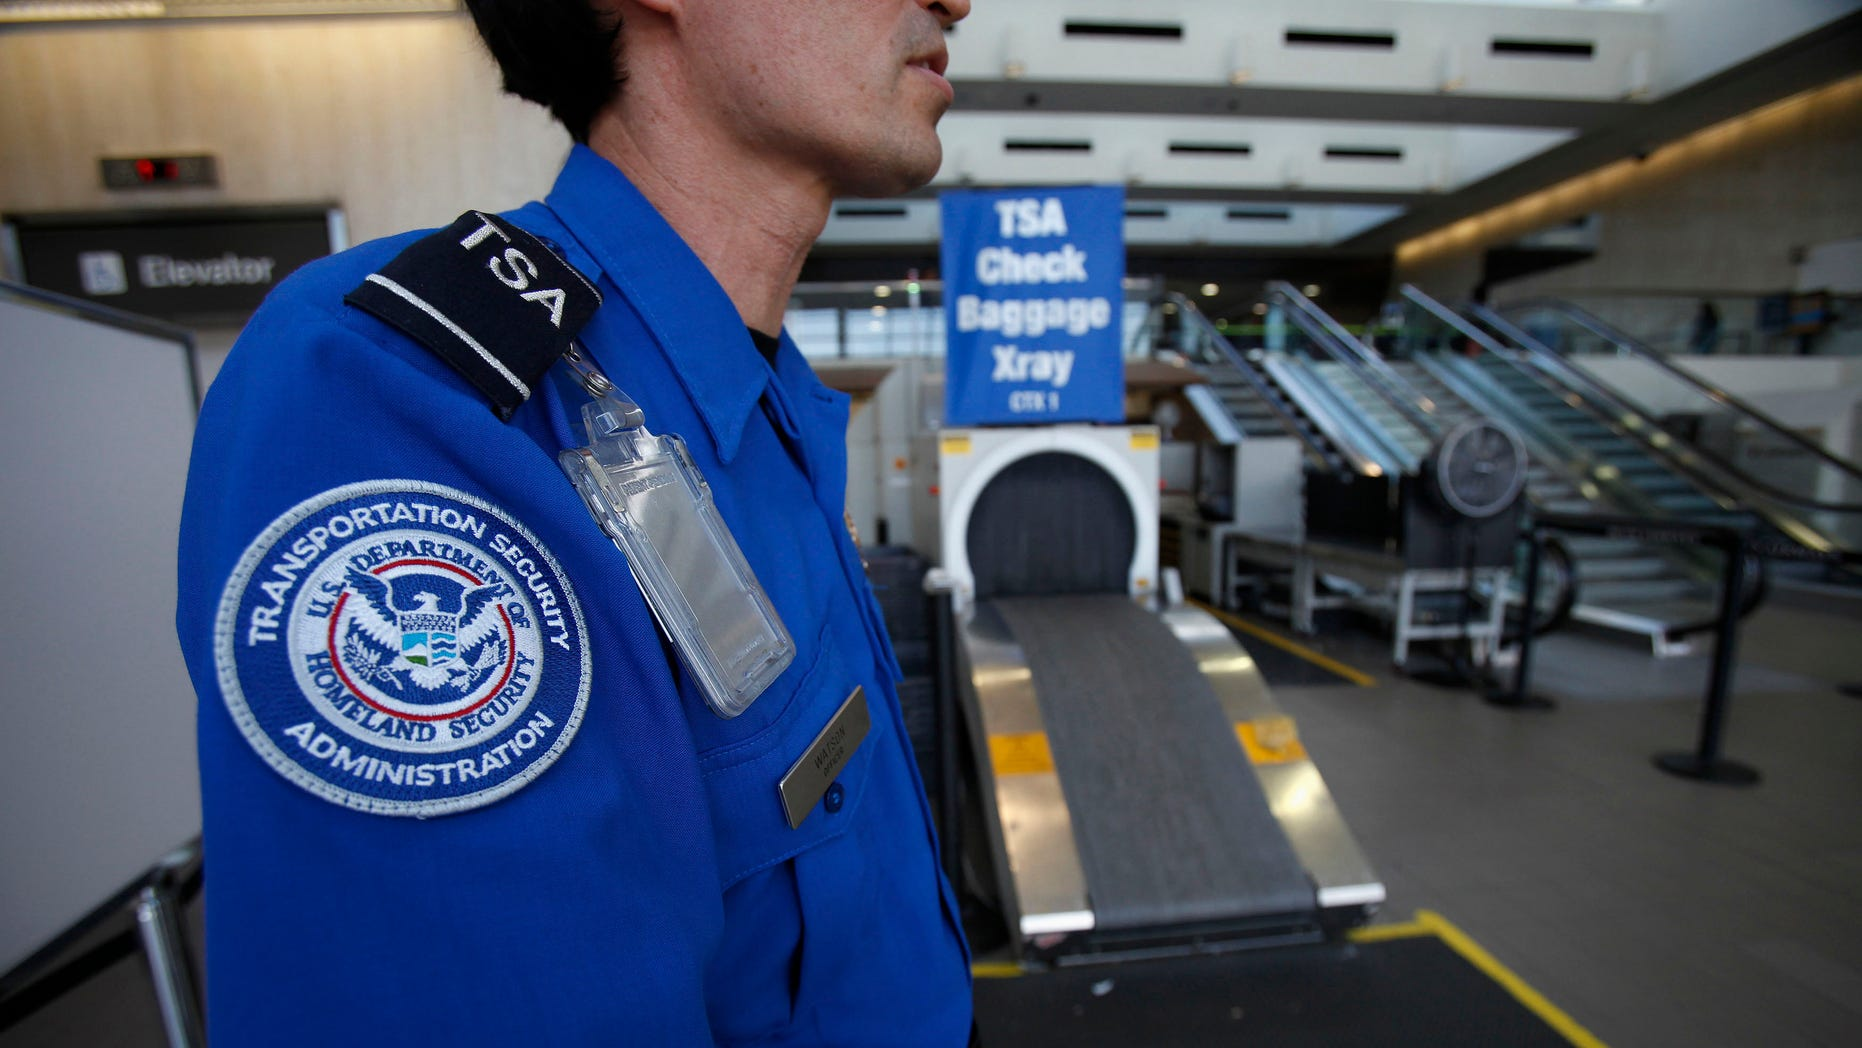 FILE: March 4, 2013: A Transportation Security Administration officer waits by an X-ray machine at Los Angeles International Airport in Los Angeles, Calif.